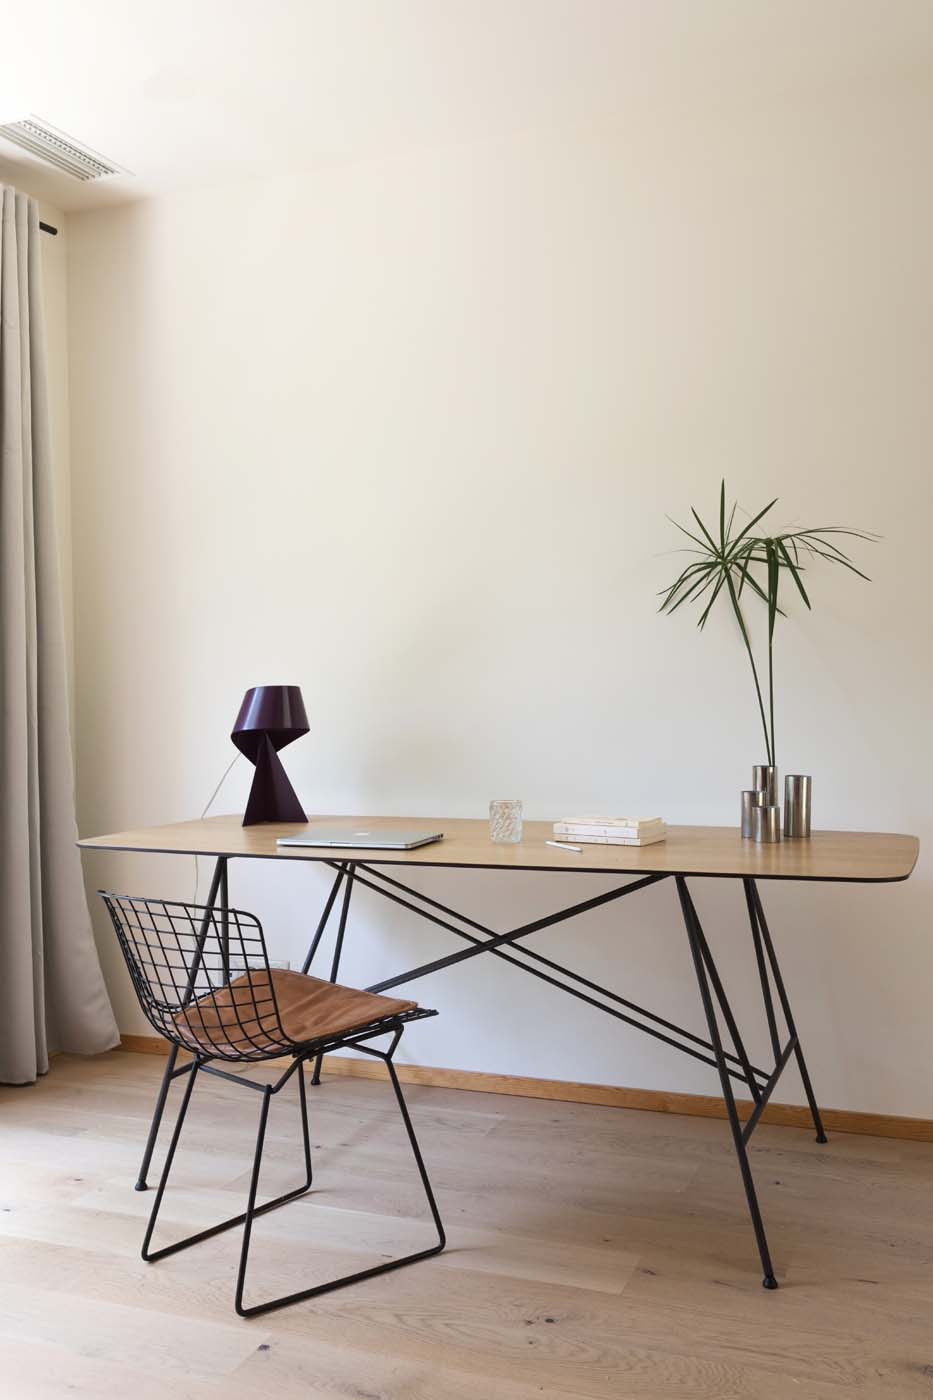 Gustave architect desk